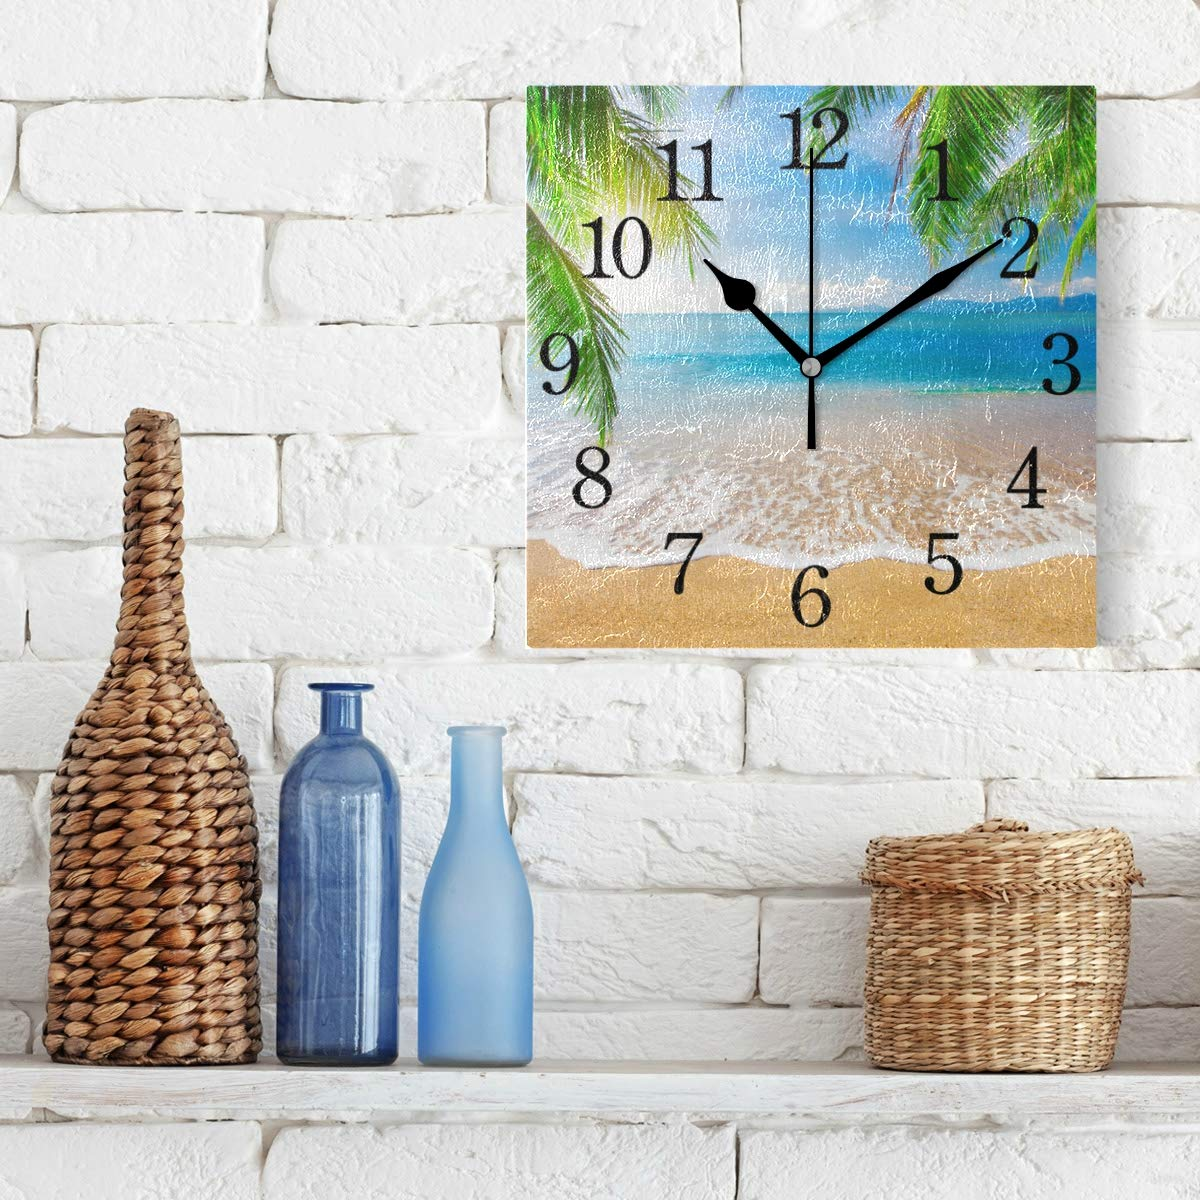 TFONE Tropical Ocean Sea Beach Wall Clock Square Silent Non Ticking Battery Operated Clock for Home Kitchen Bedroom Bathroom Living Room Office Decorative